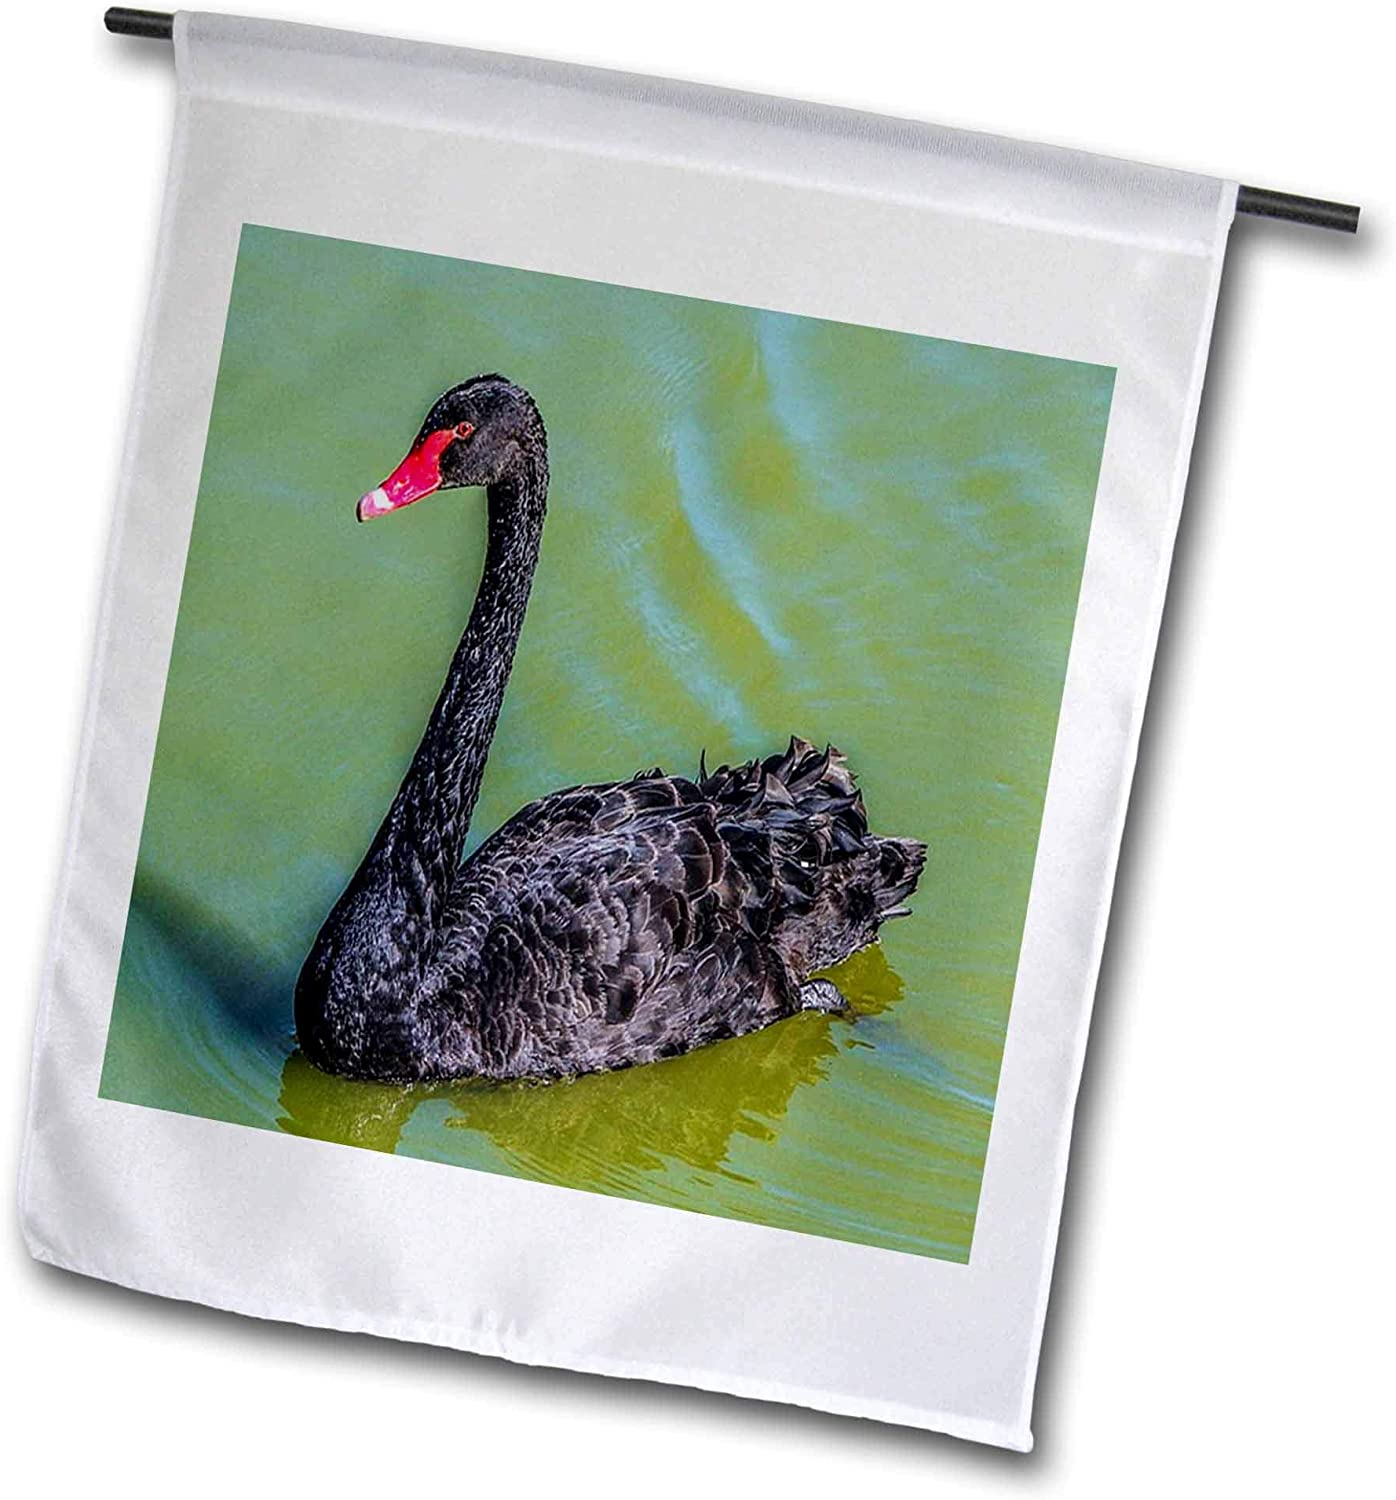 3dRose Lens Art by Florene - Beautiful Birds - Image of A Black Swan on Green Lake - 12 x 18 inch Garden Flag (fl_318951_1)